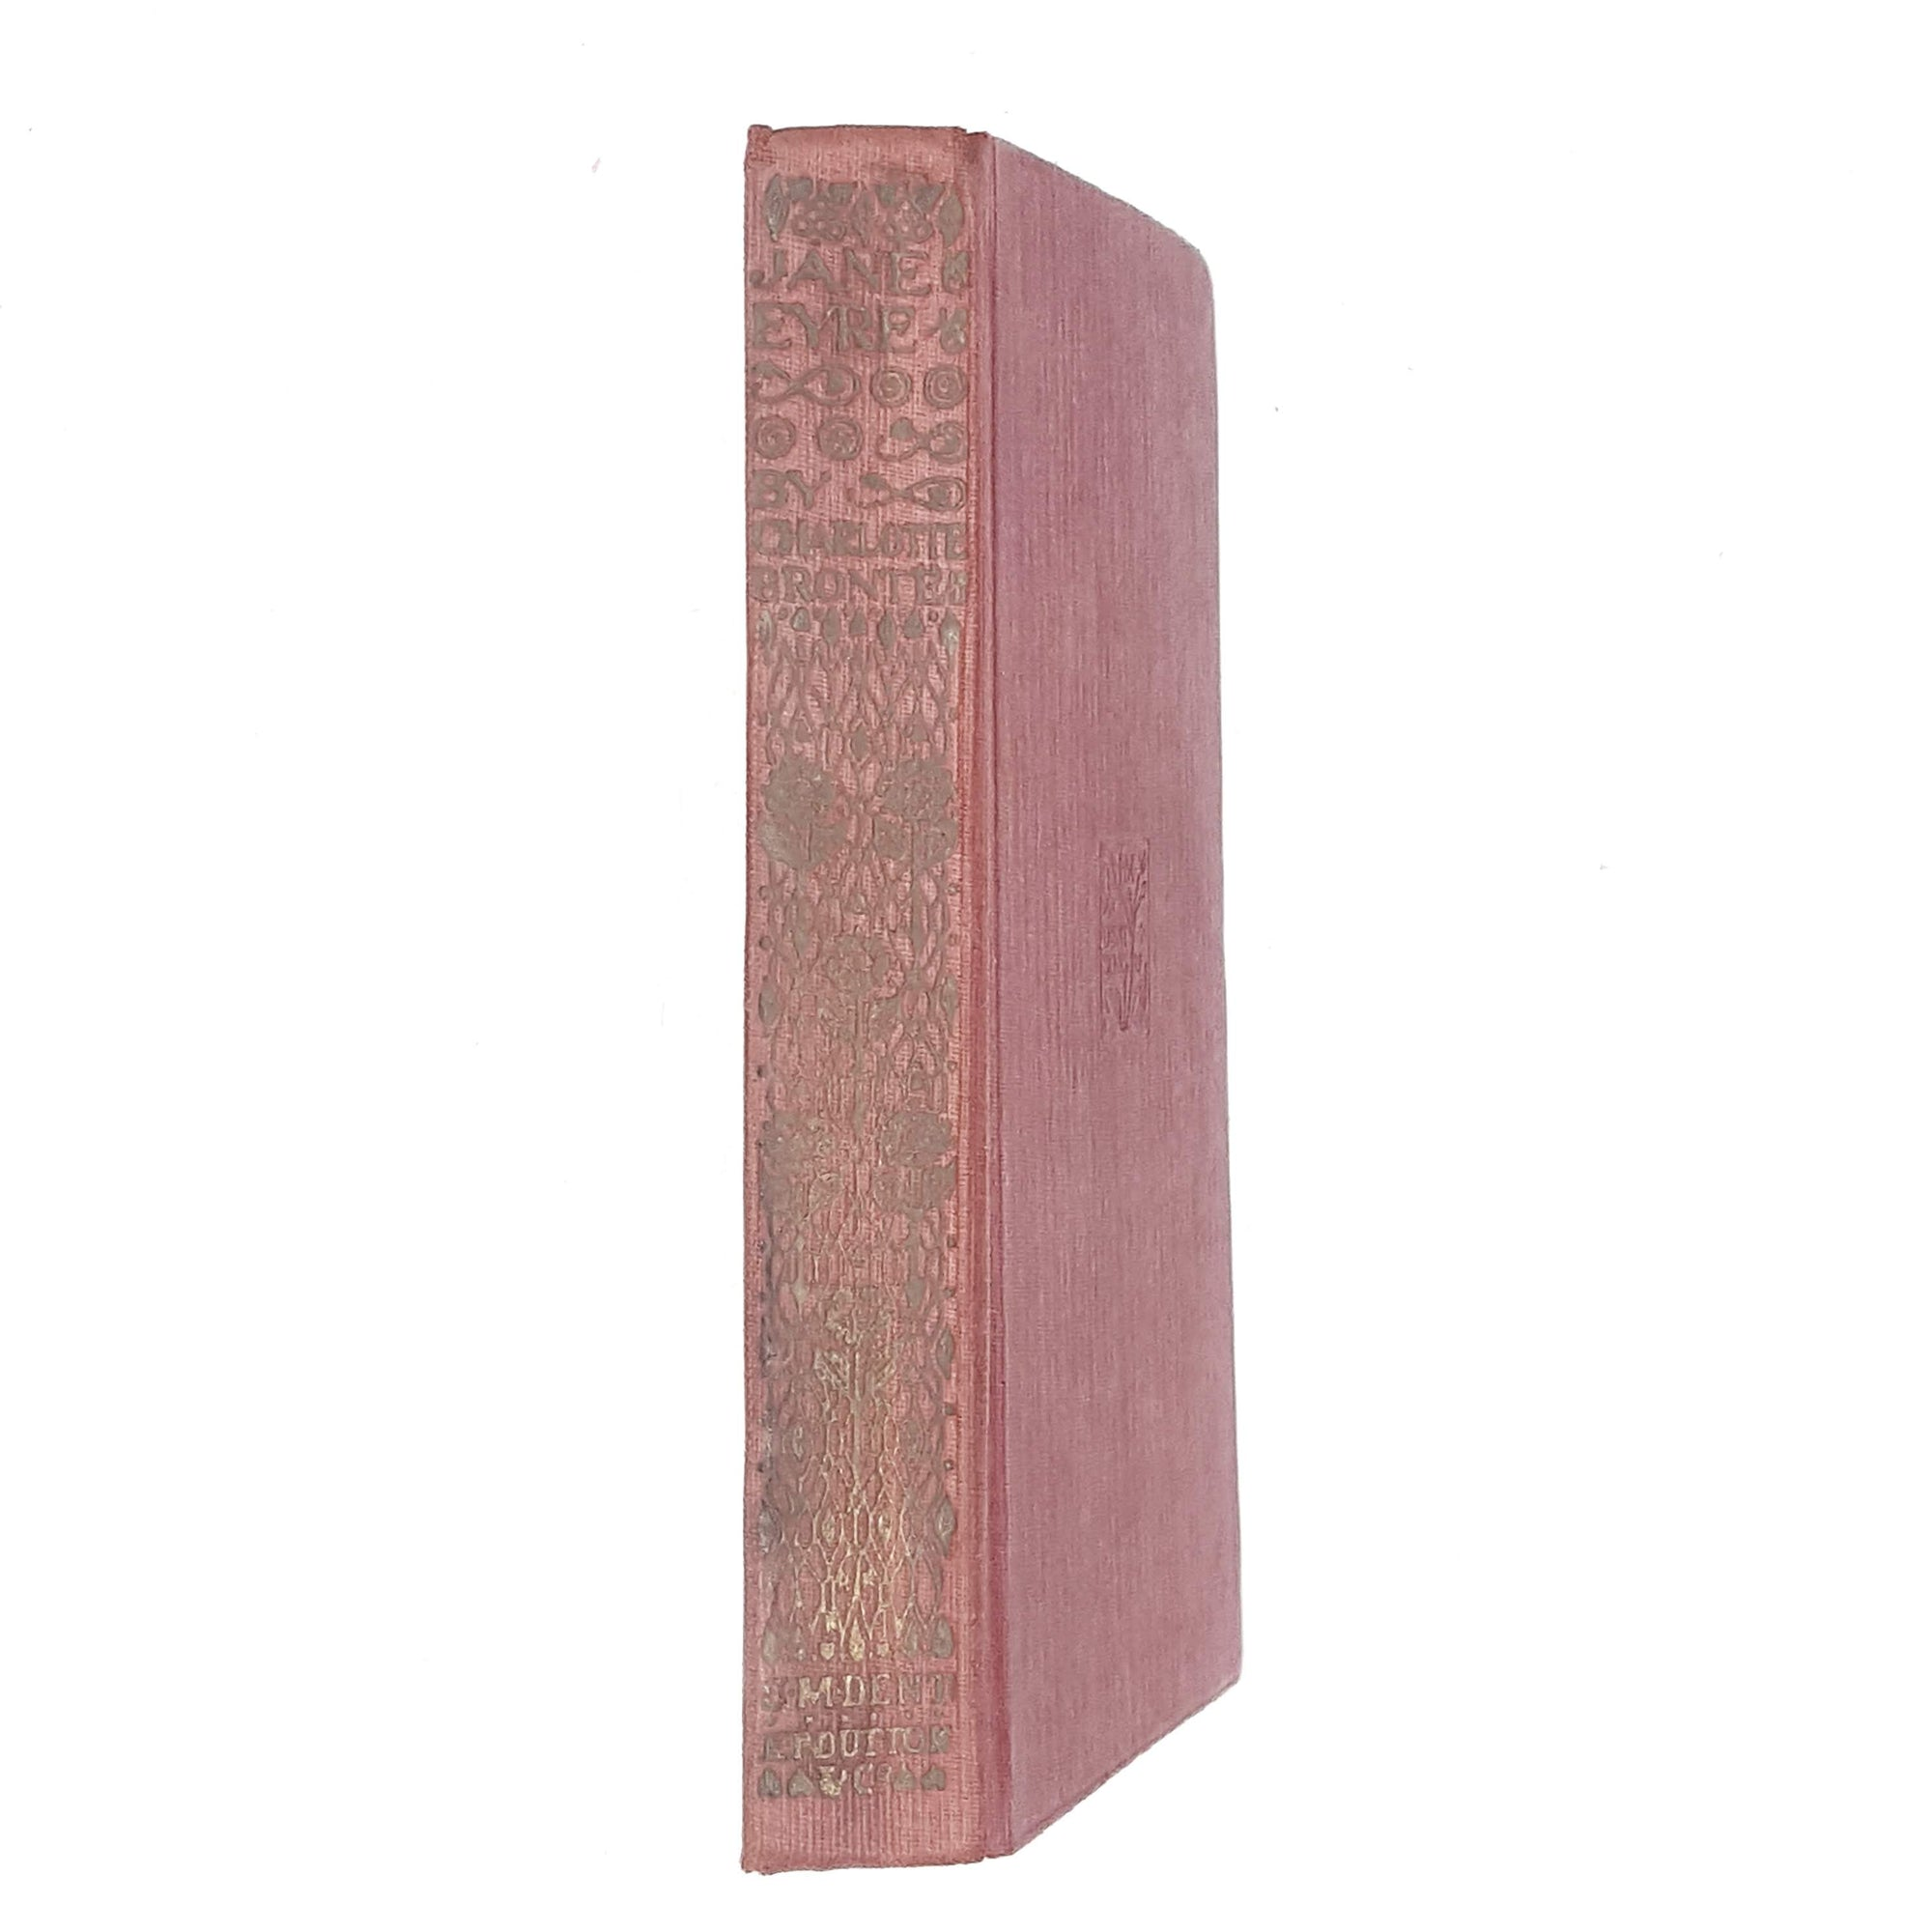 Jane Eyre by Charlotte Bronte 1915